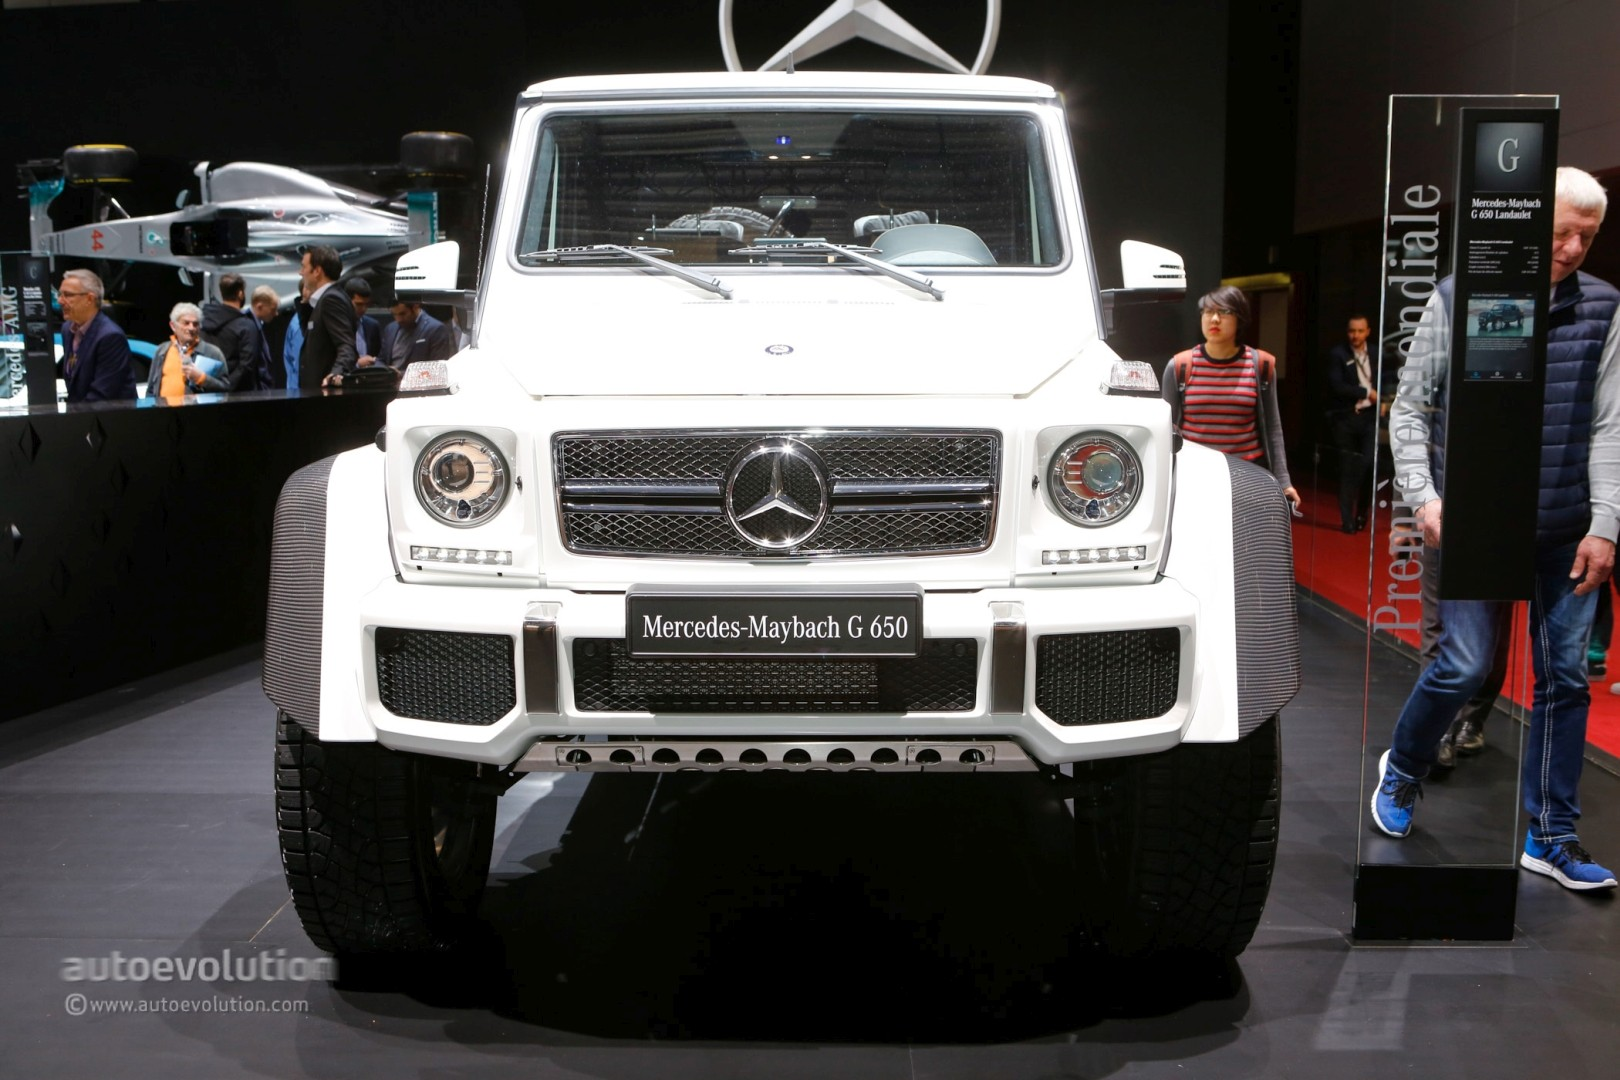 https://s1.cdn.autoevolution.com/images/news/gallery/one-example-of-the-2018-mercedes-maybach-g650-landaulet-is-heading-to-auction_6.jpg